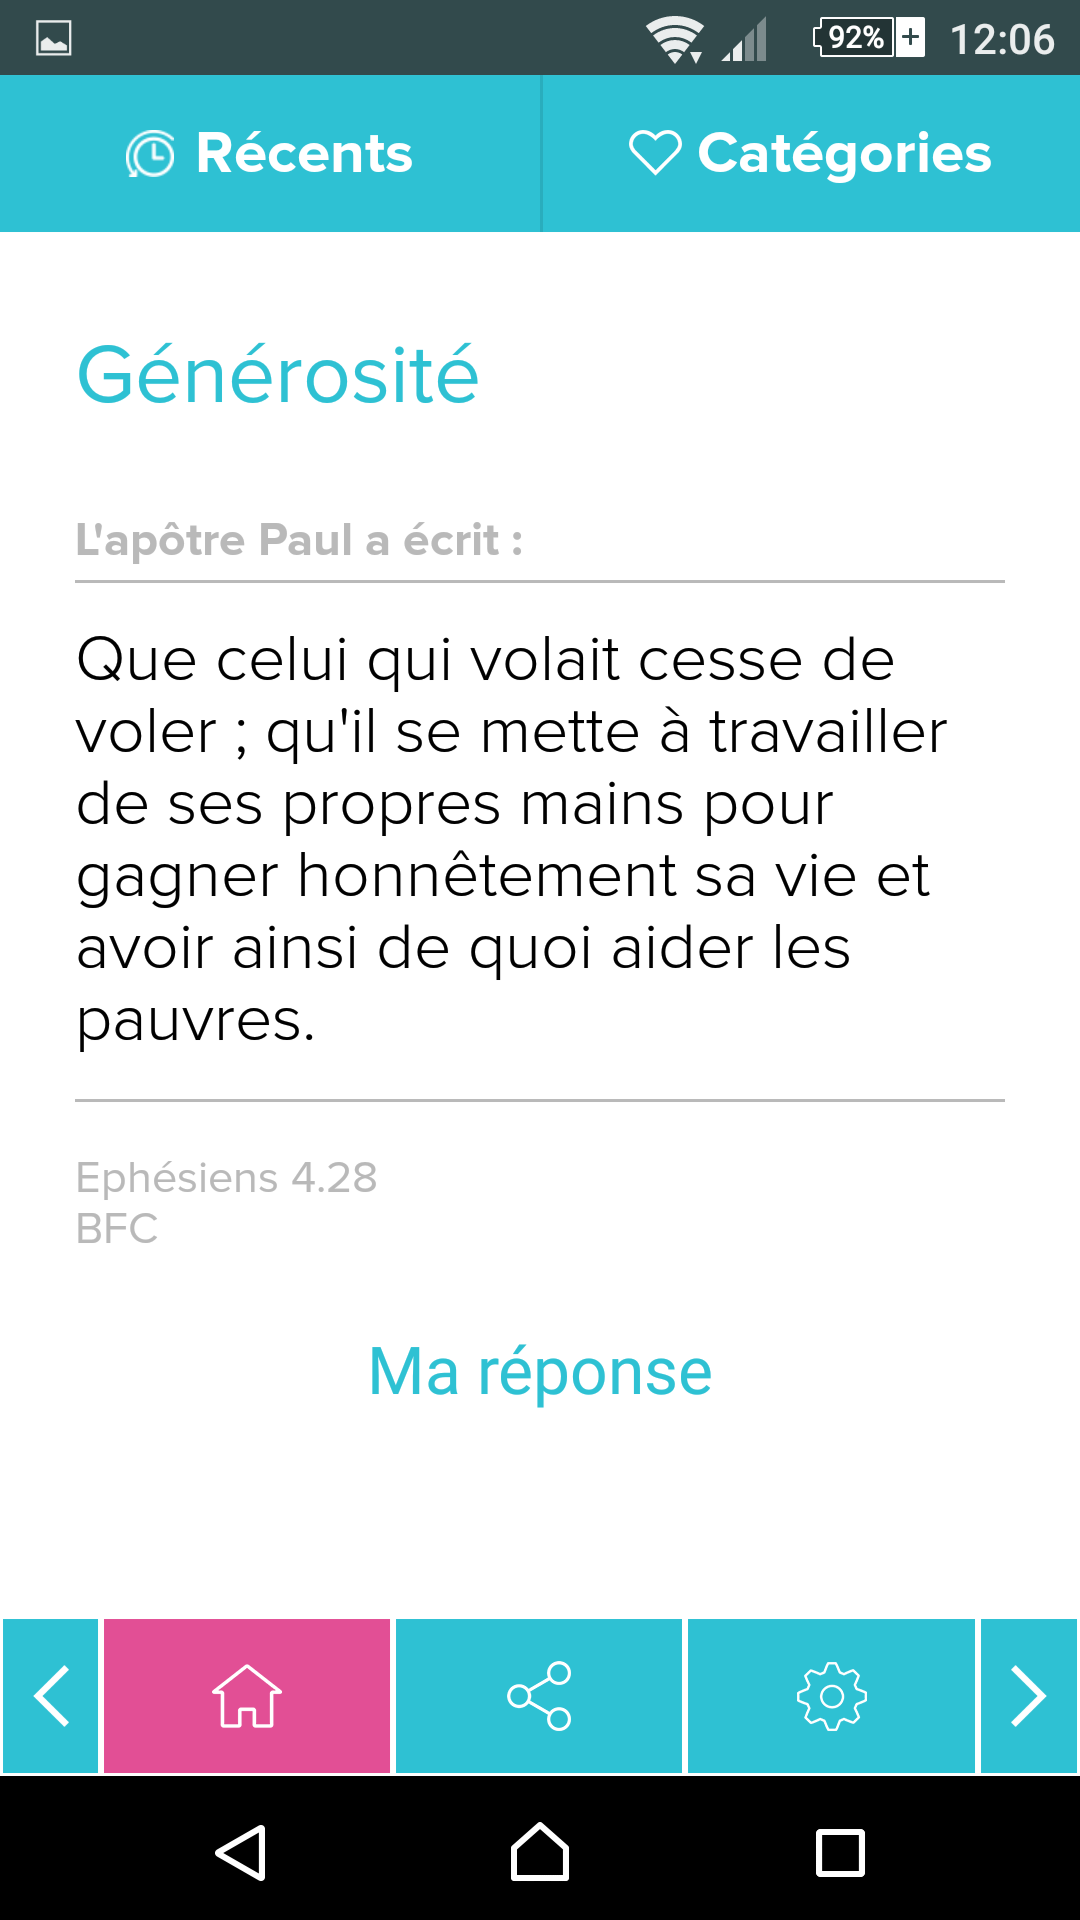 lcwords-app-screenshot-fr.png